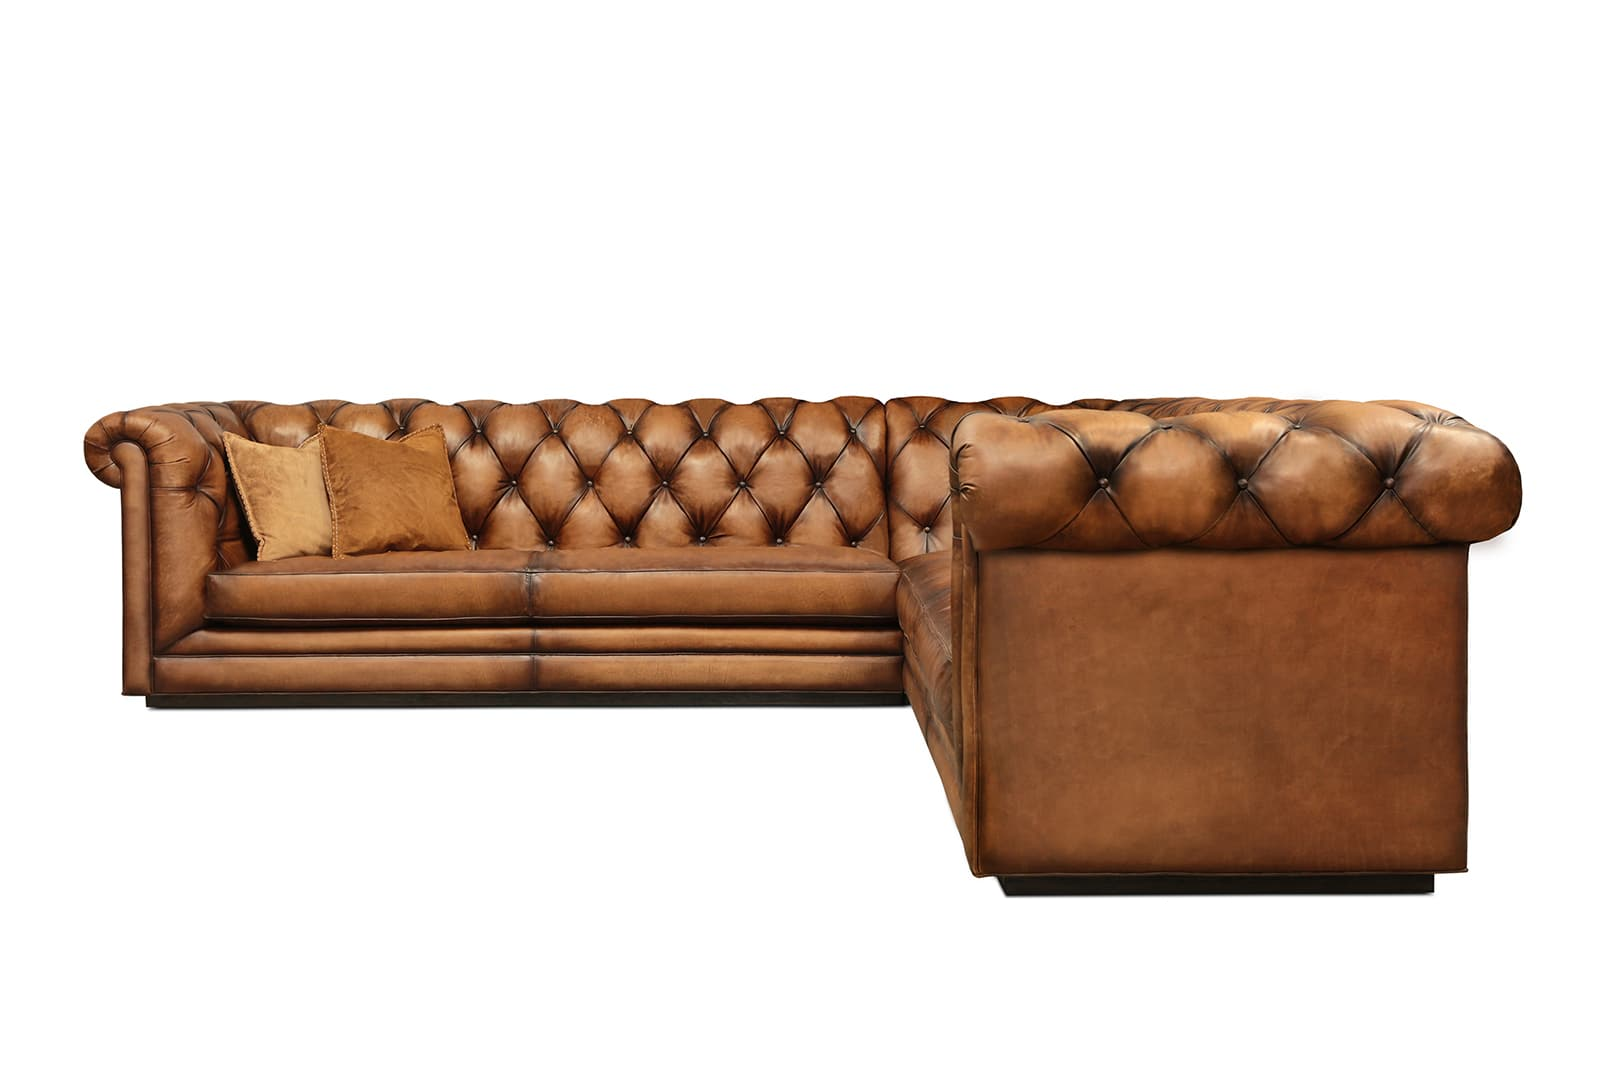 CHEYNE CHESTERFIELD 32 33 85 MAE CARTIER ANTIQUE CHESTNUT 4980 2